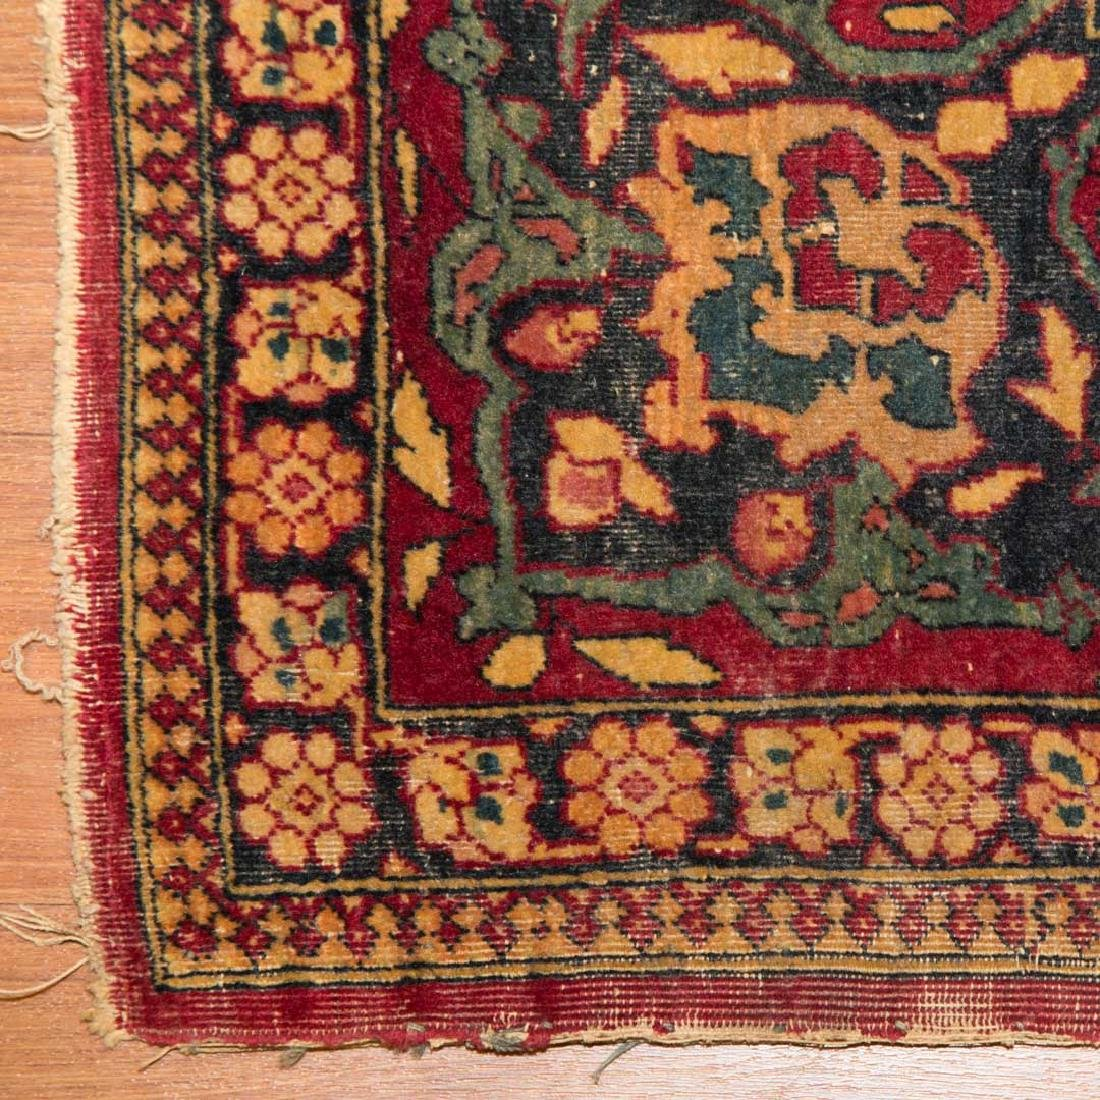 Antique Ispahan rug, approx. 4.7 x 7.2 - 2